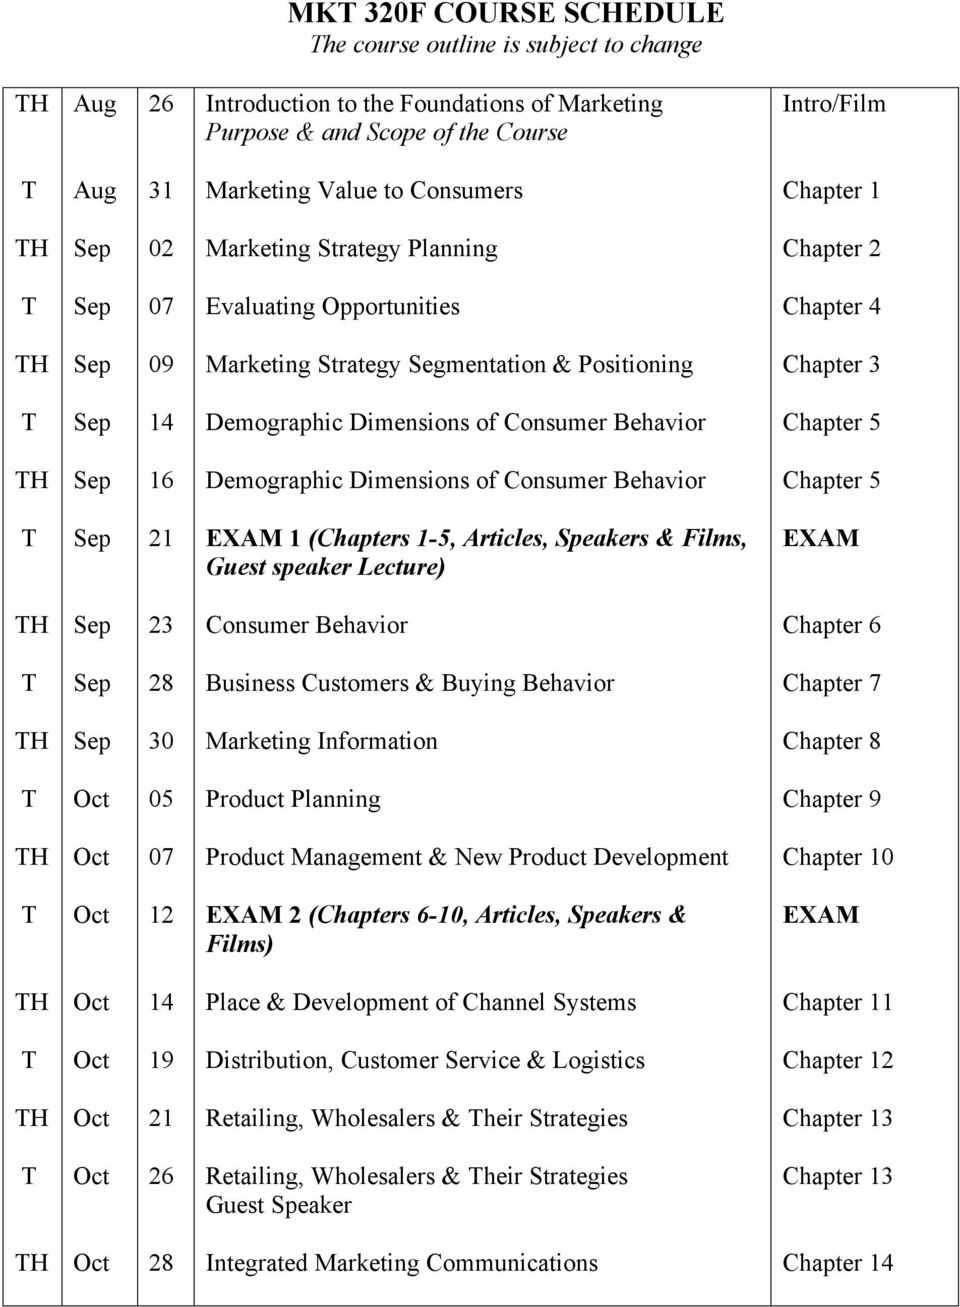 Chapter 5 16 Demographic Dimensions of Consumer Behavior Chapter 5 21 EXAM 1 (Chapters 1-5, Articles, Speakers & Films, Guest speaker Lecture) EXAM 23 Consumer Behavior Chapter 6 28 Business